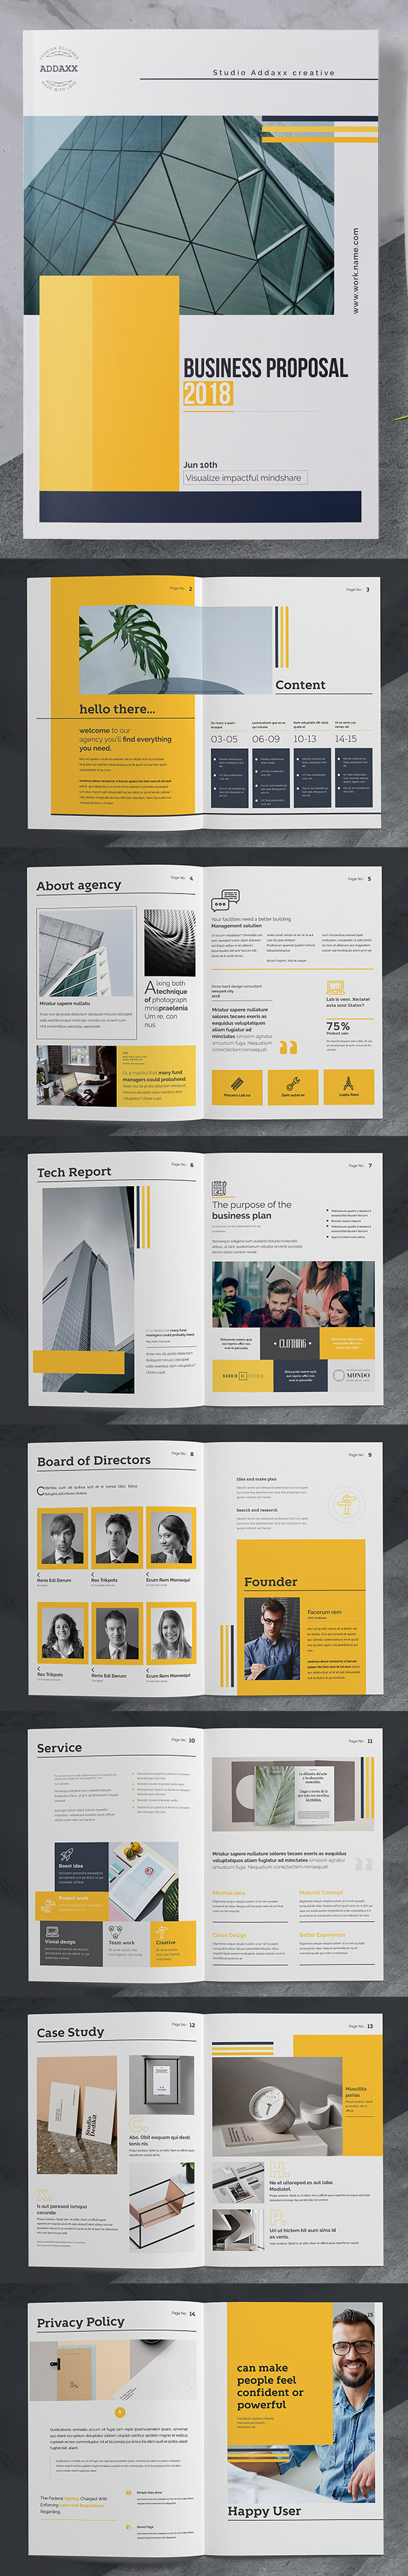 Clean Business Proposal Template